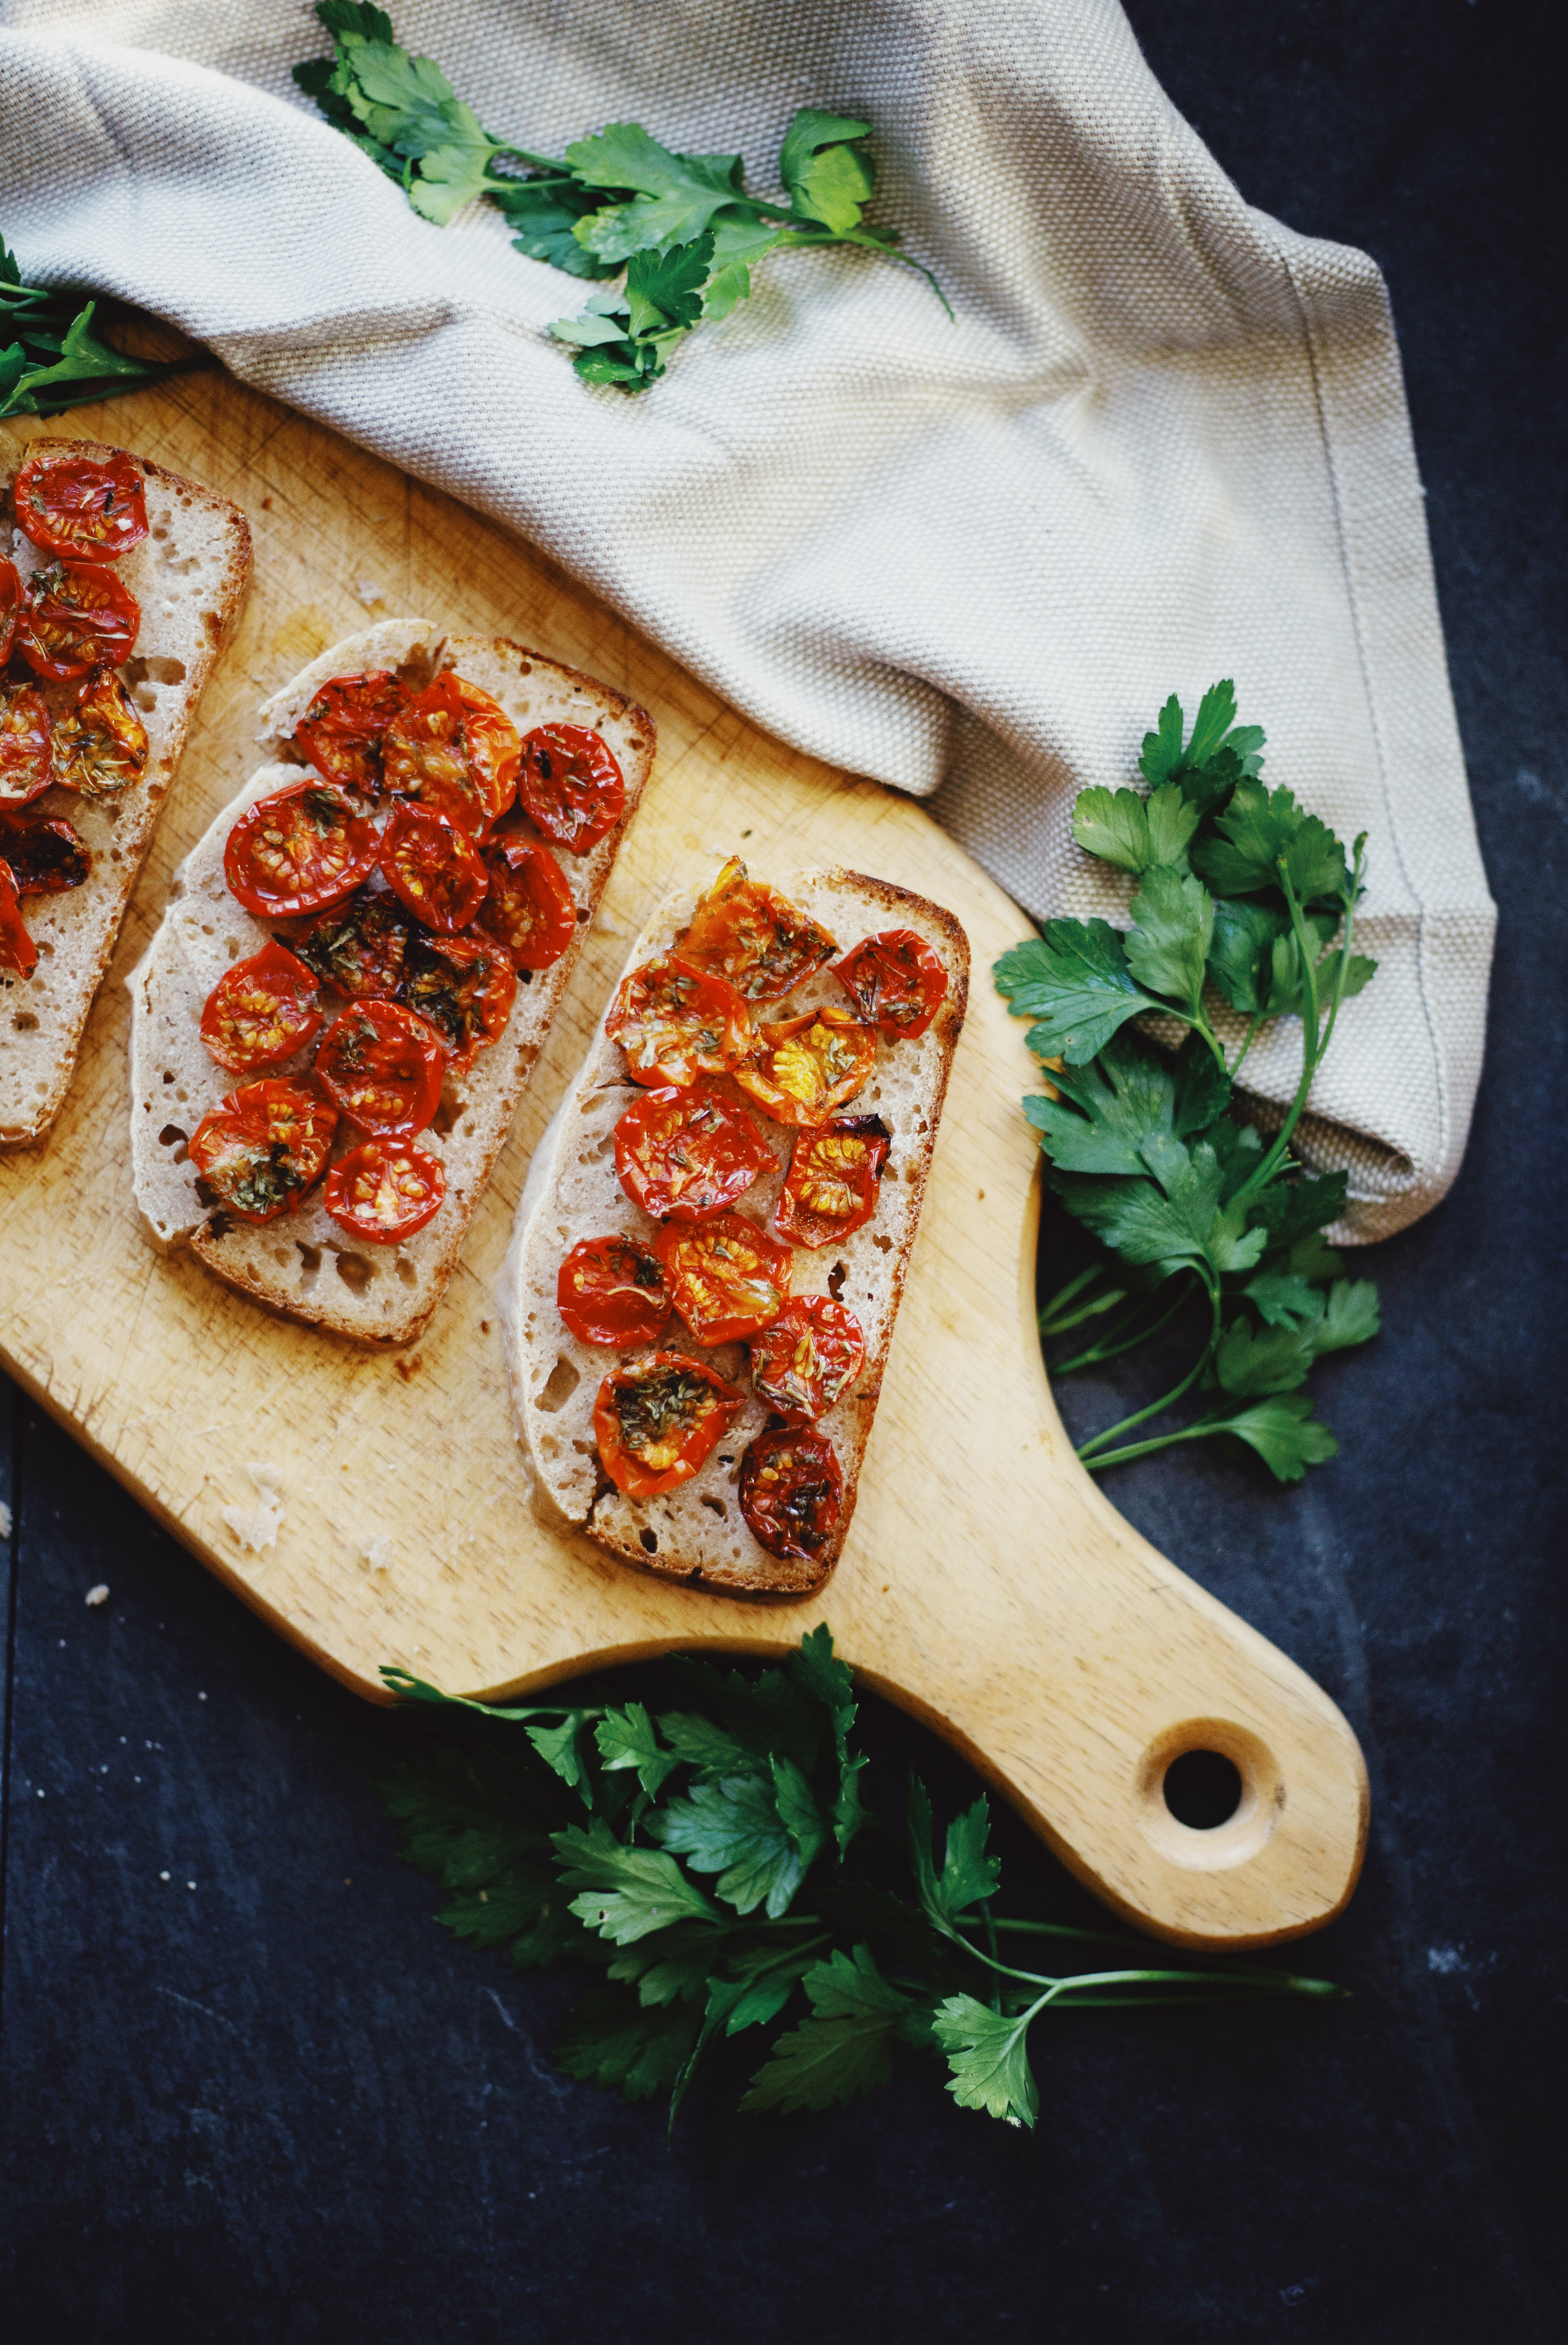 Roasted cherry tomatoes on sourdough bread recipe